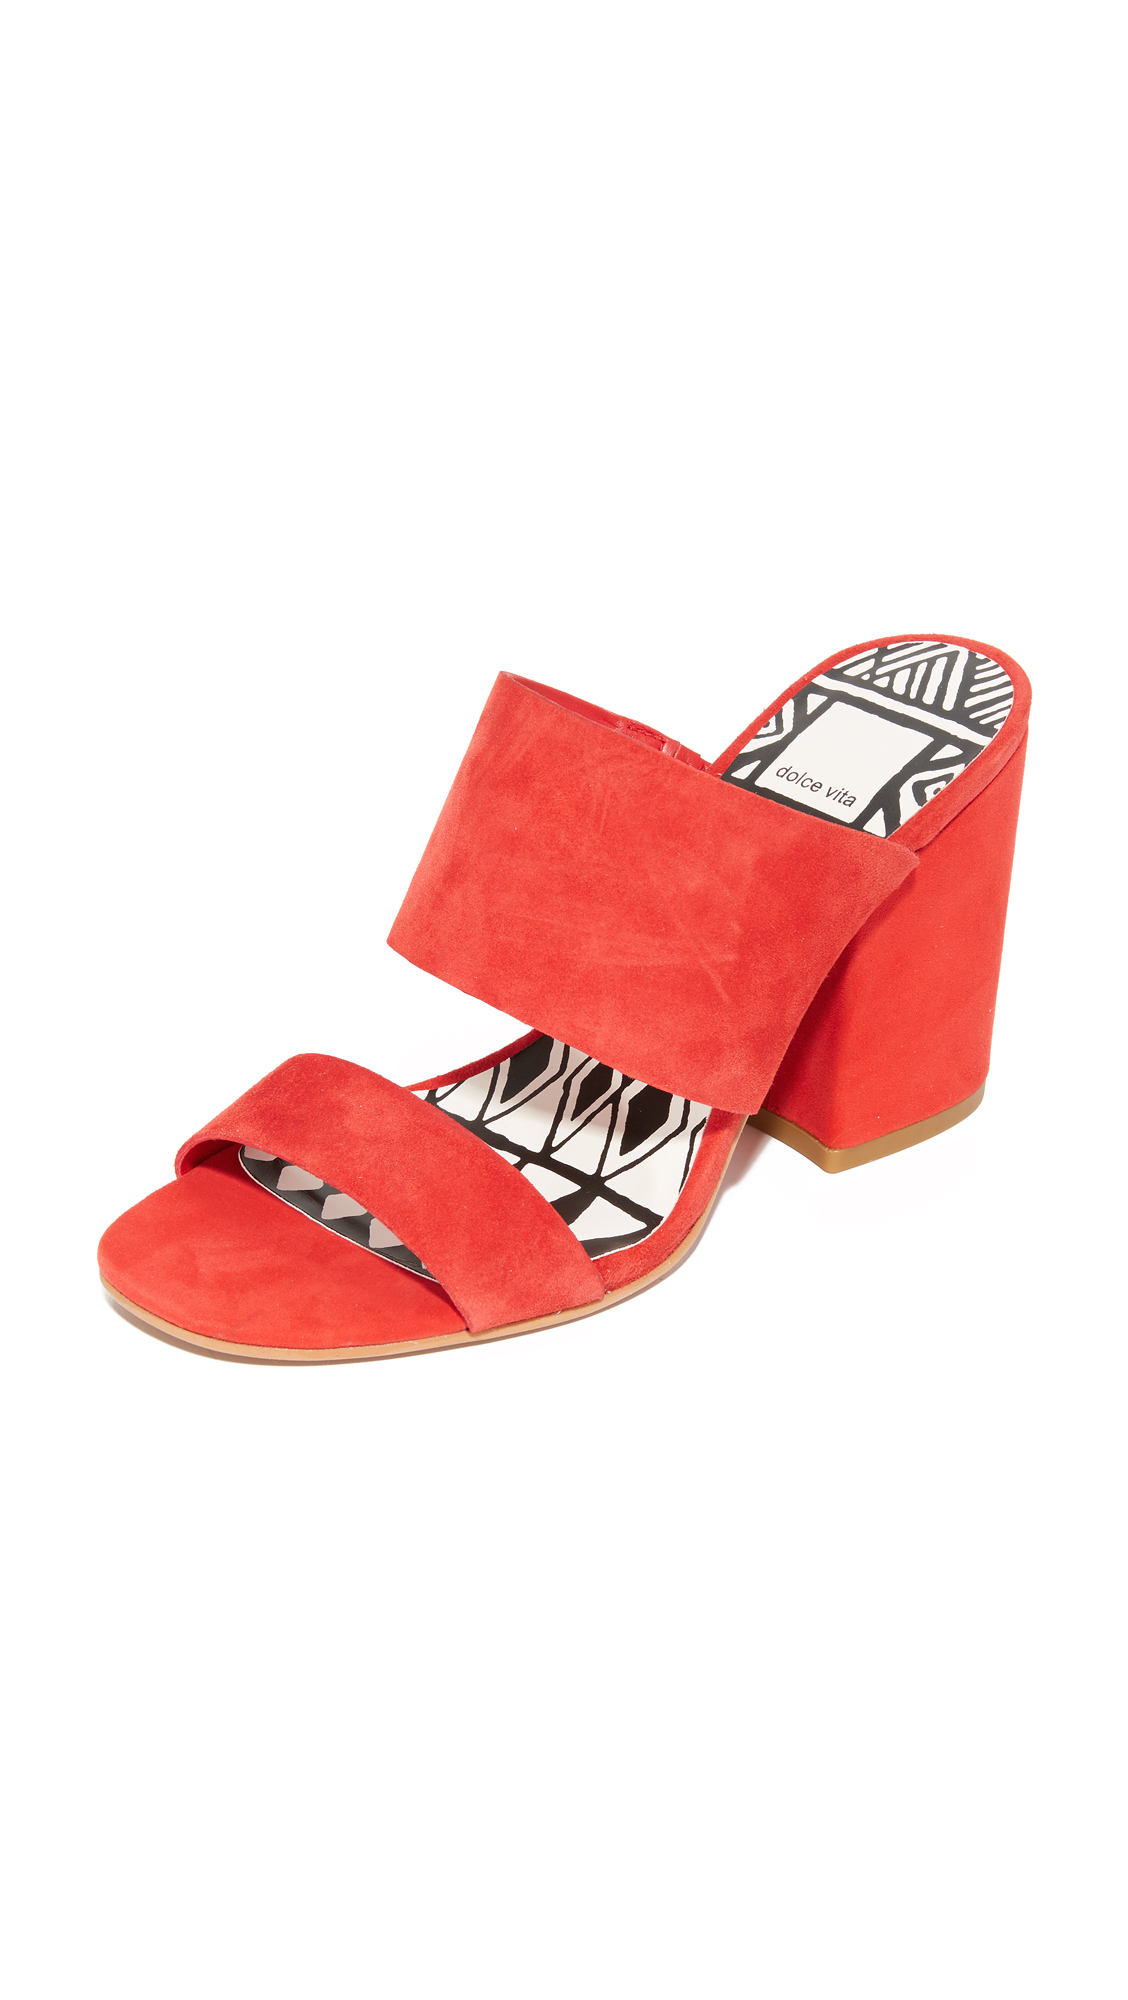 Dolce Vita Elize Mules - Red at Shopbop